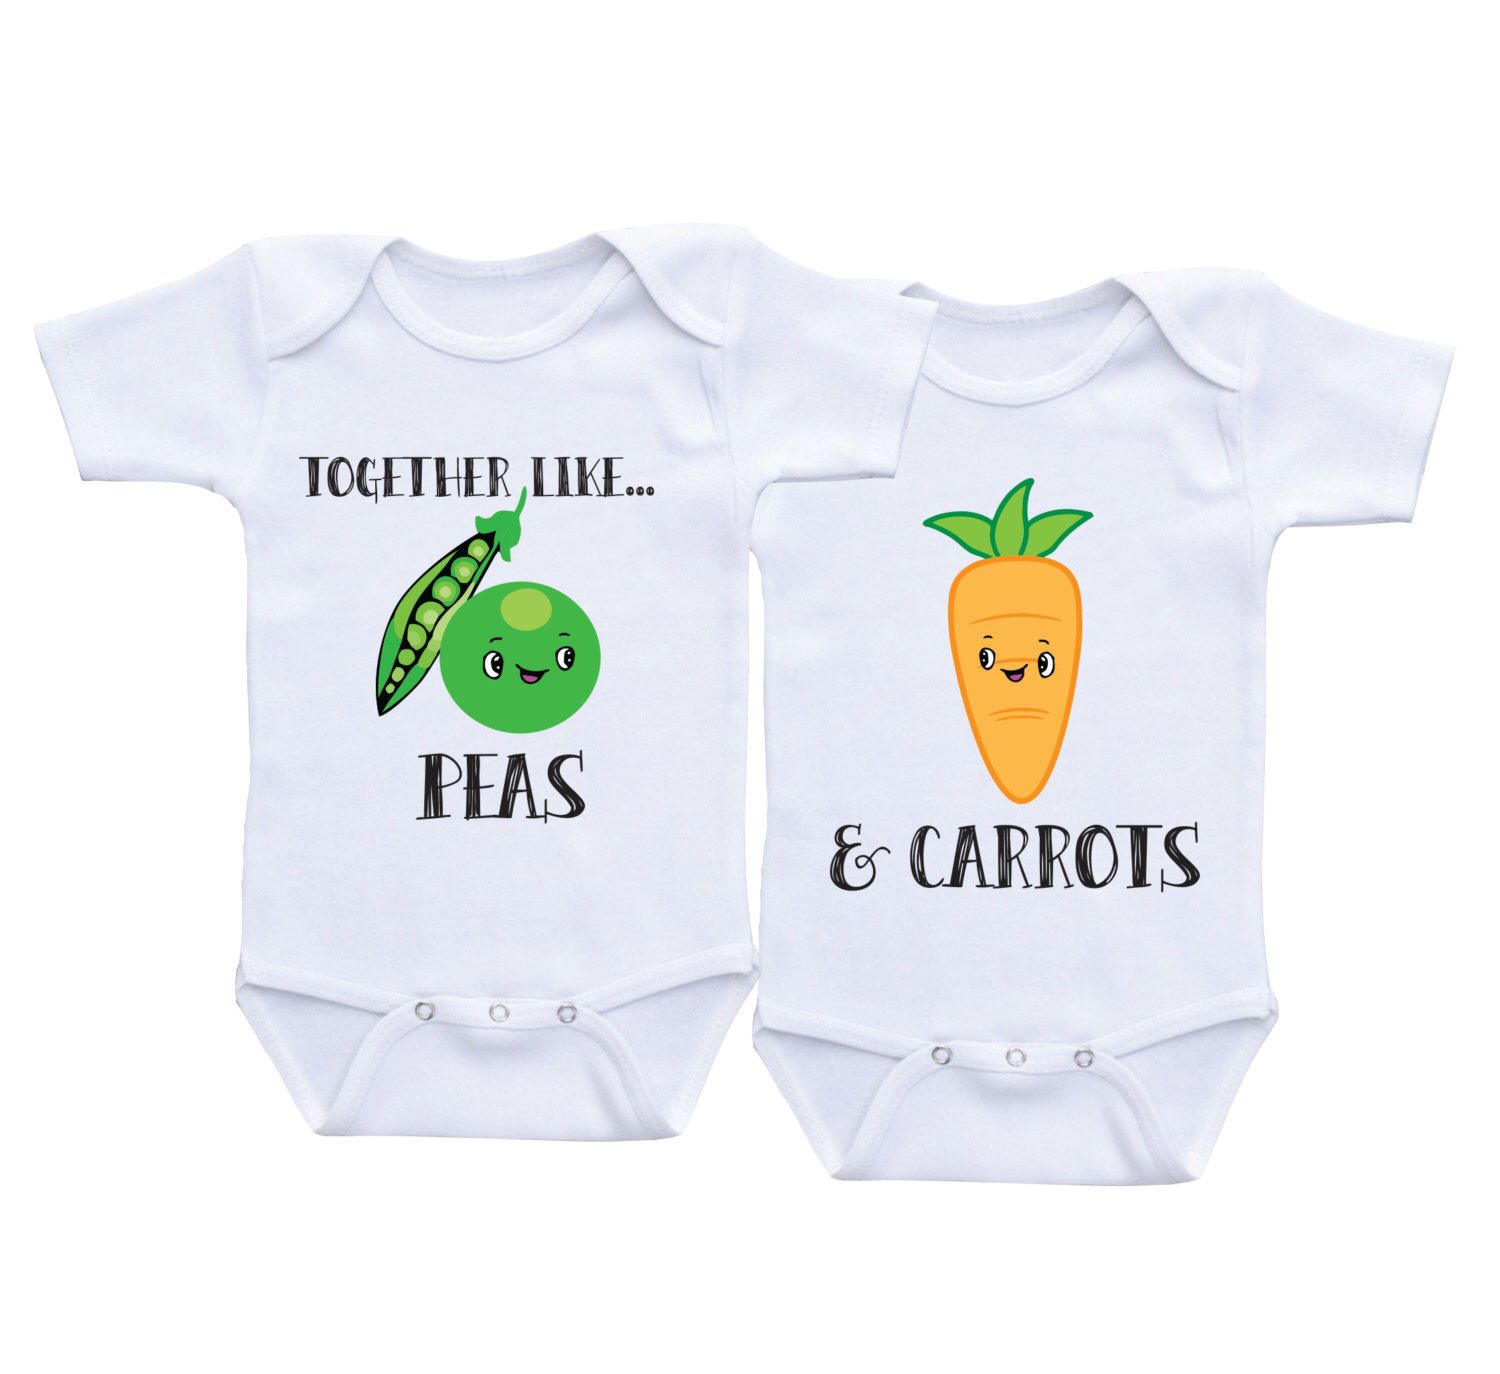 Twins Clothing & Shoes. TWIN OUTFIT TWIN BABY GIFT MIRACLE TWIN BABY GIRLS BABY BODYSUIT. $ 15% Off with code MIDWEEKTREAT. Twin Baby Clothes - Twin A Outfit Baby Bodysuit. $ 15% Off with code MIDWEEKTREAT. TWIN OUTFIT TWIN BABY GIFT MIRACLE TWIN BABY BOYS BABY BODYSUIT.